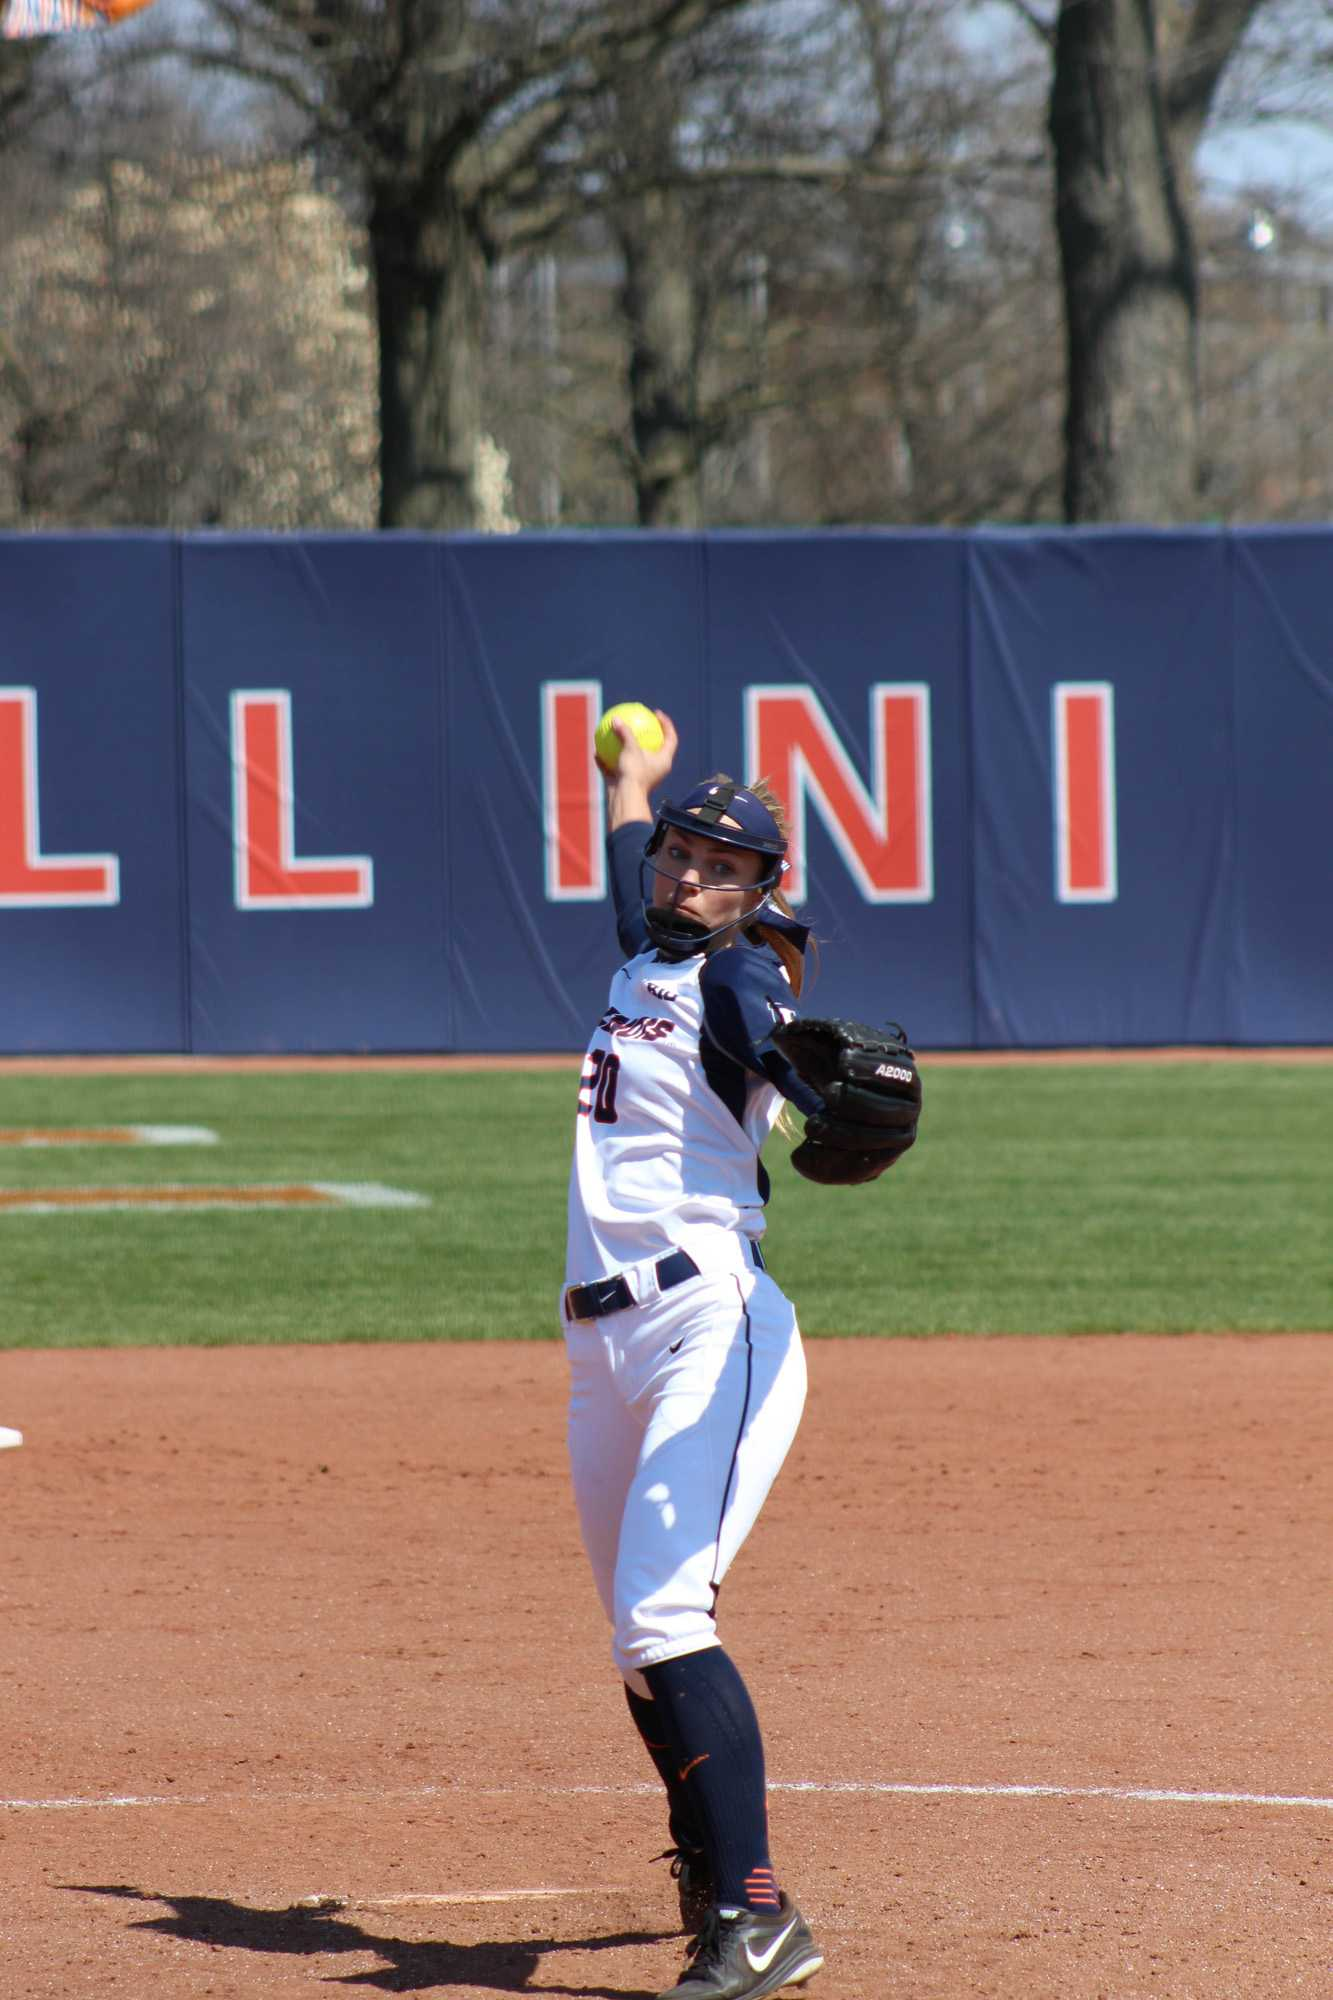 Illinois' Breanna Wonderly pitches in the game against Rutgers at Eichelberger Field on Sunday, Apr. 3, 2016